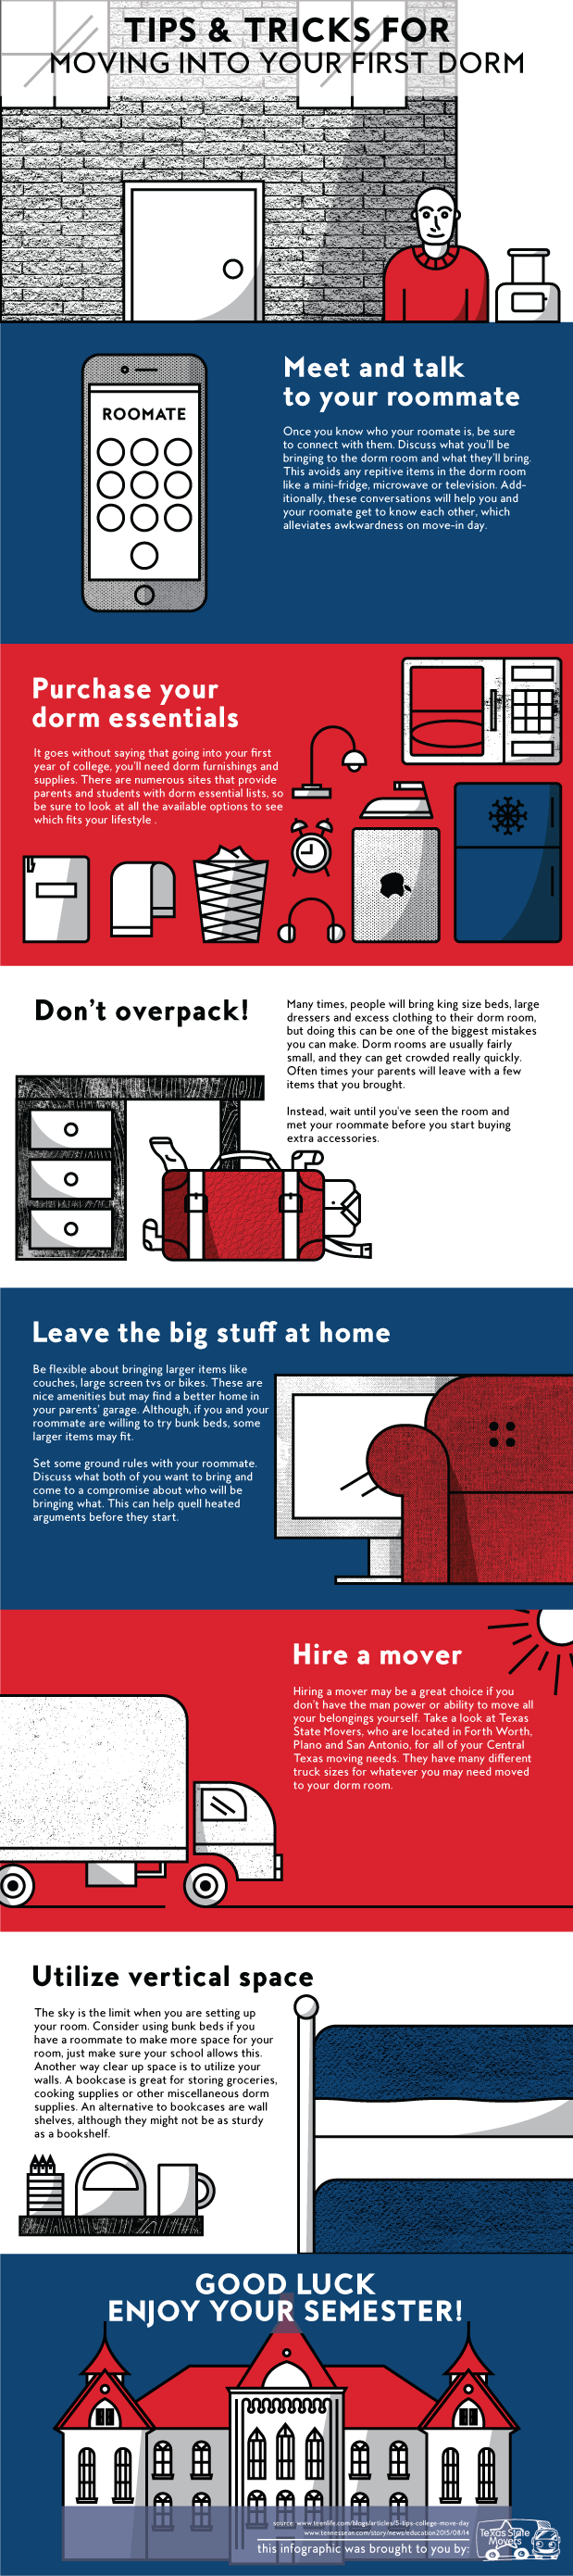 Moving into your First Dorm Infographic